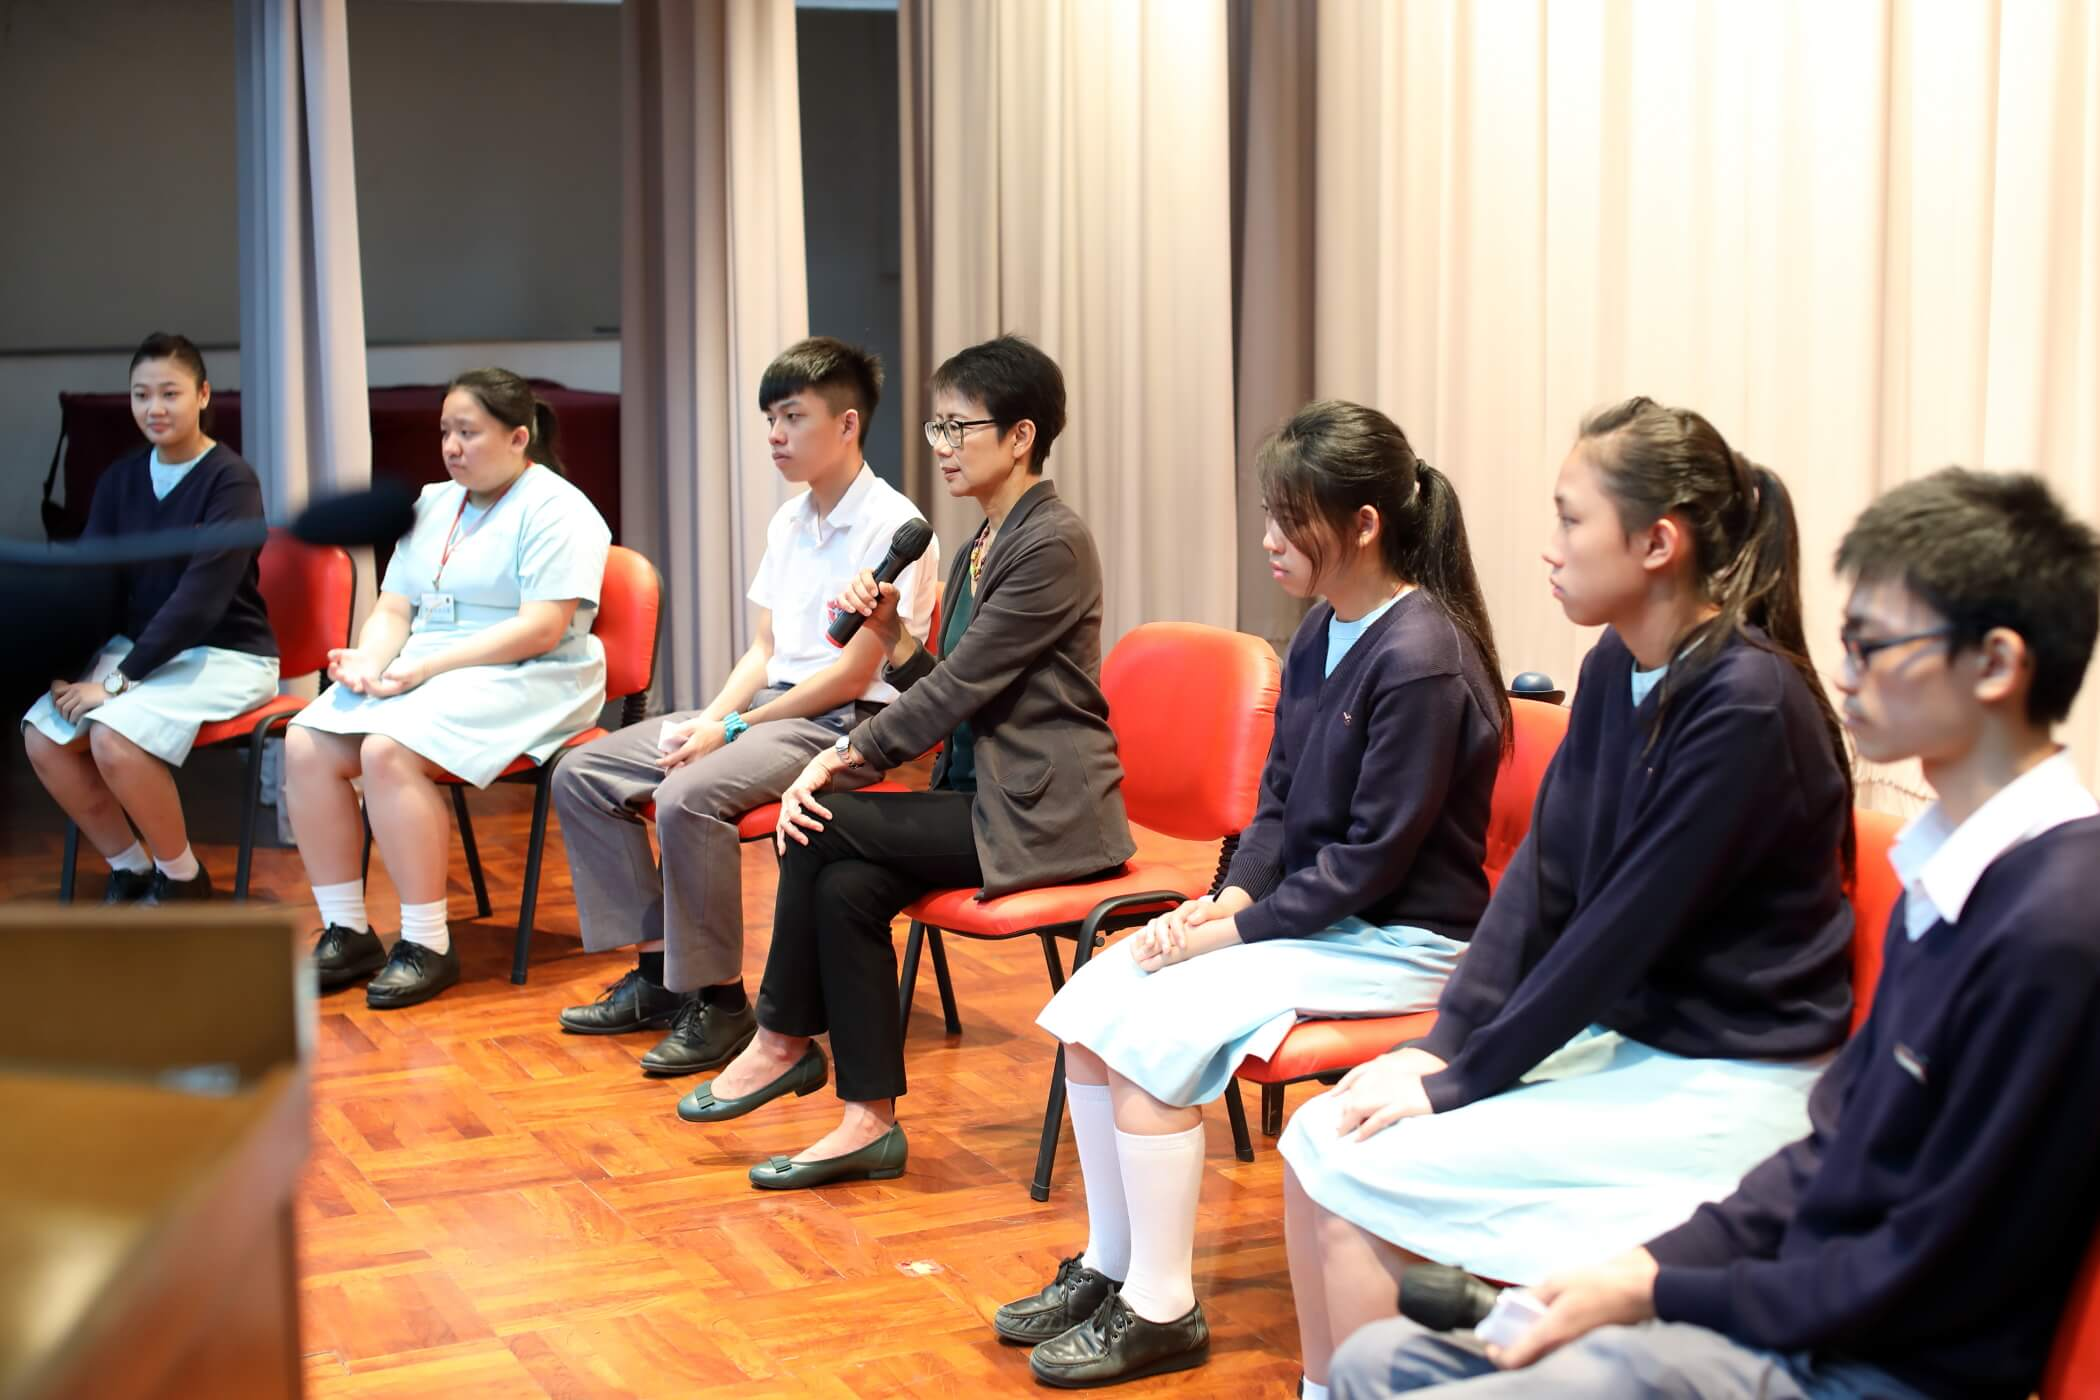 Christine Loh giving speech to students during her visit at Pui Shing Secondary School